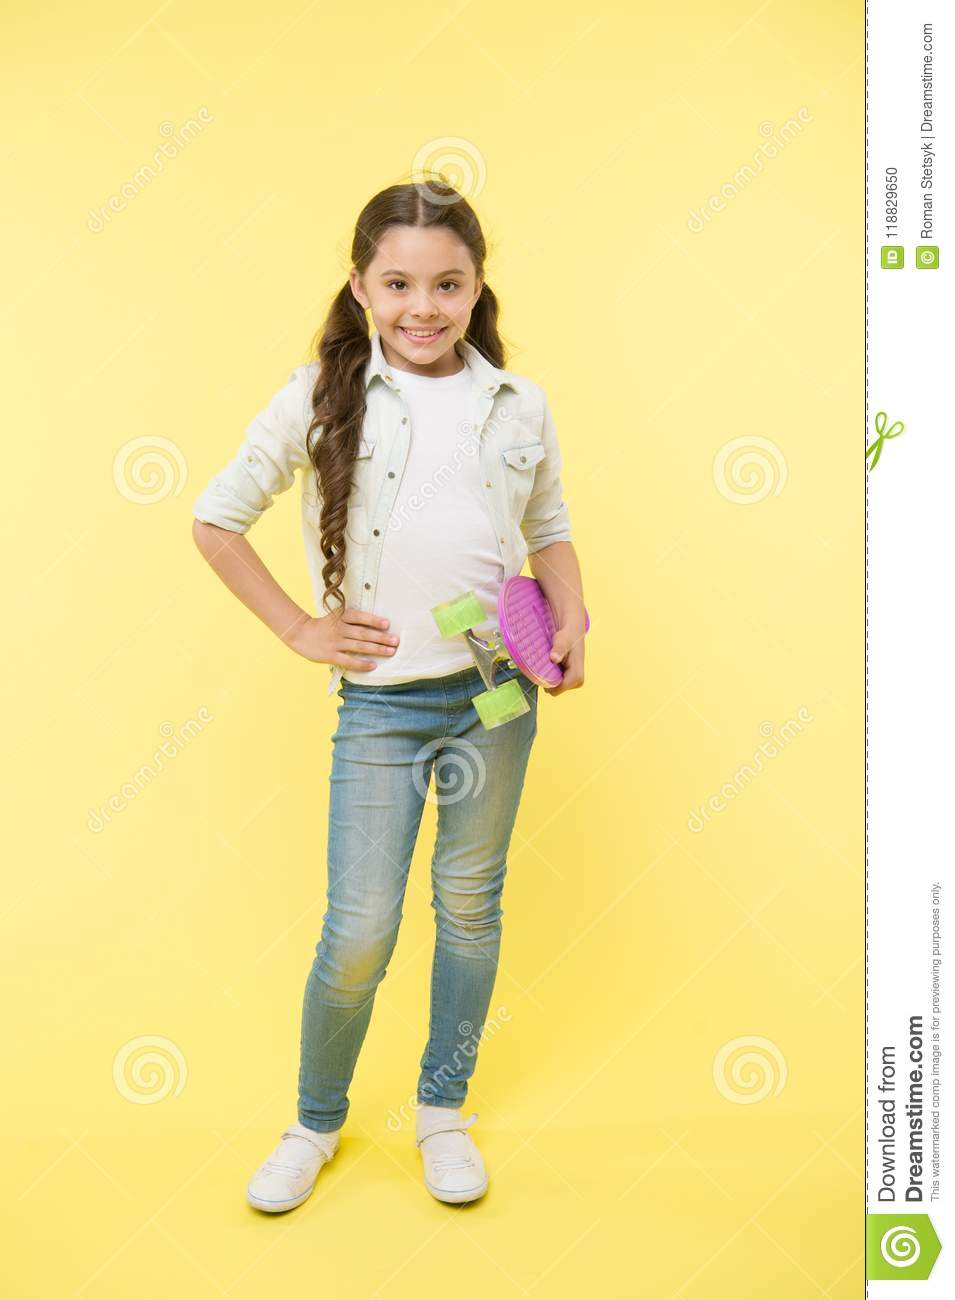 Child cool and confident likes skateboarding. Joyful and happy. Kid girl casual style with penny board enjoy childhood